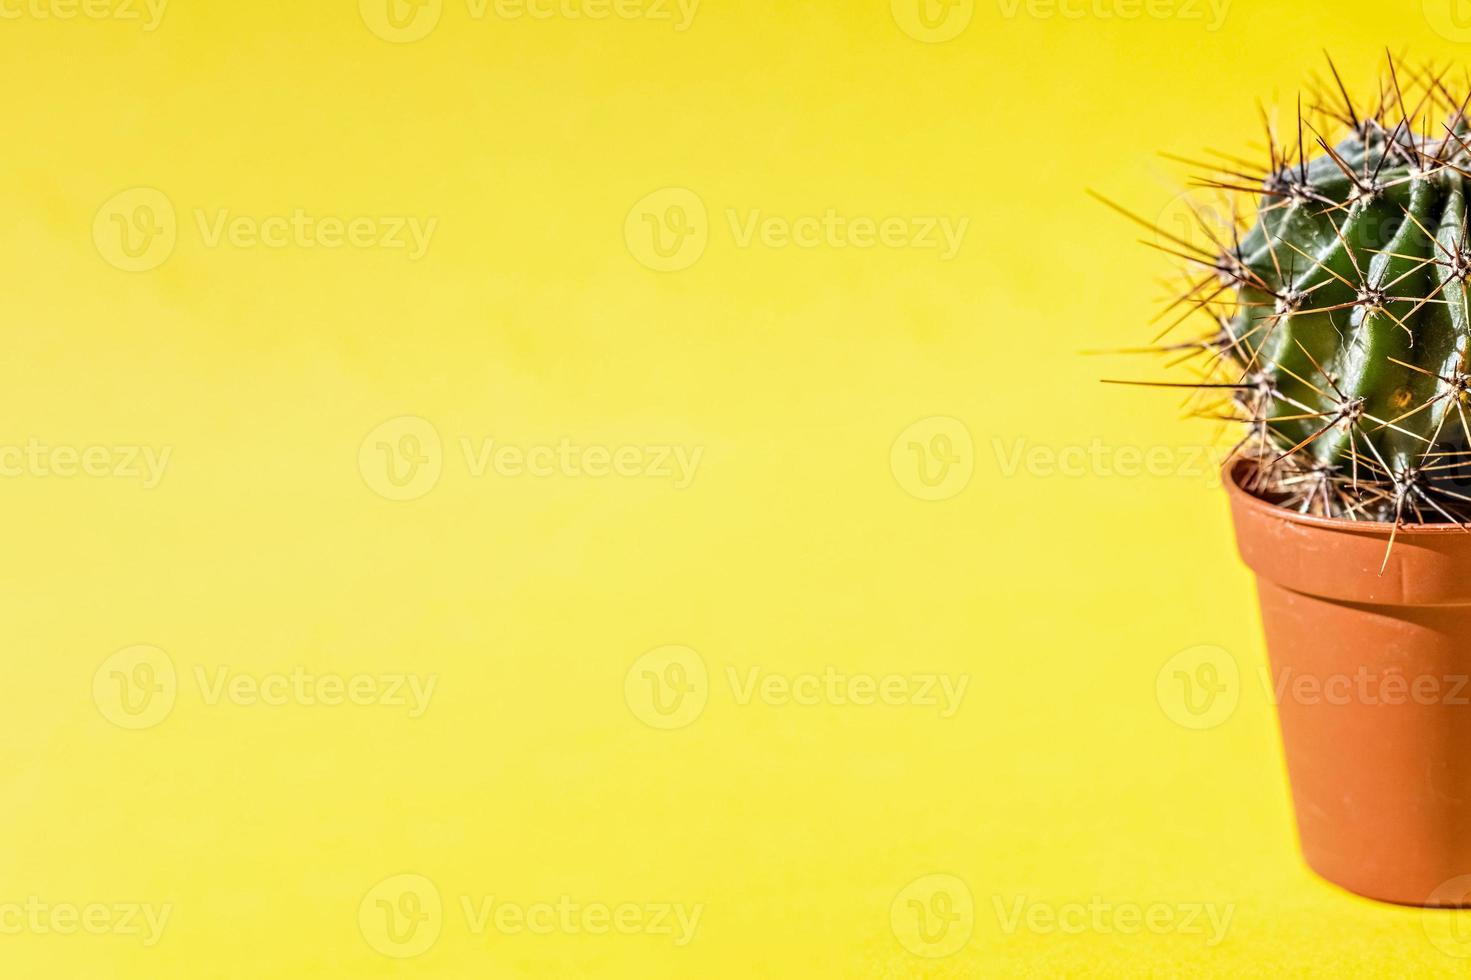 Part of a cactus plant in a flower pot on a yellow background photo